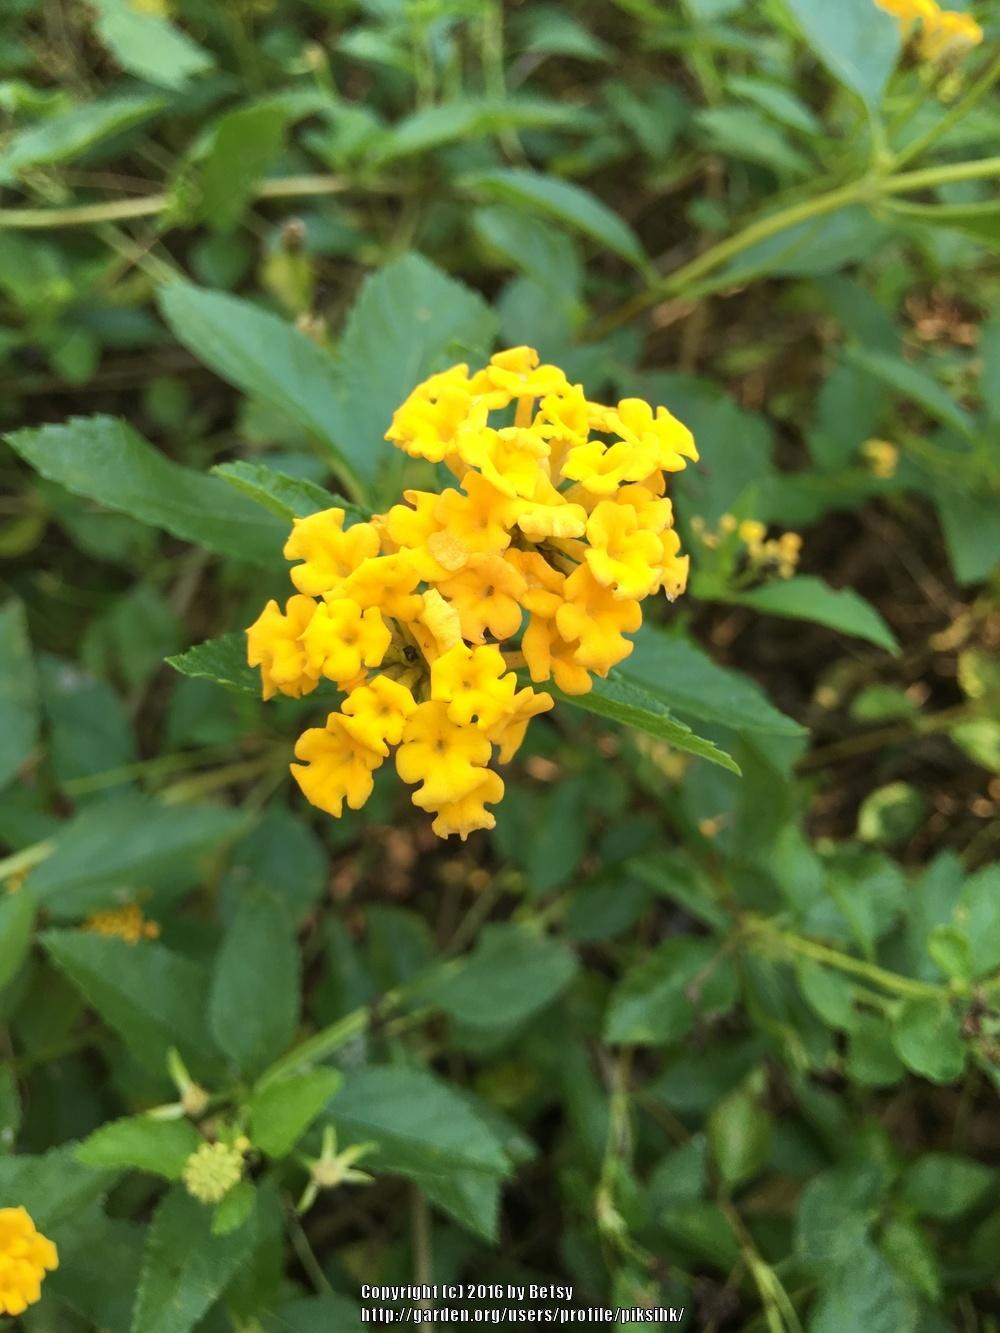 Photo of Lantana uploaded by piksihk